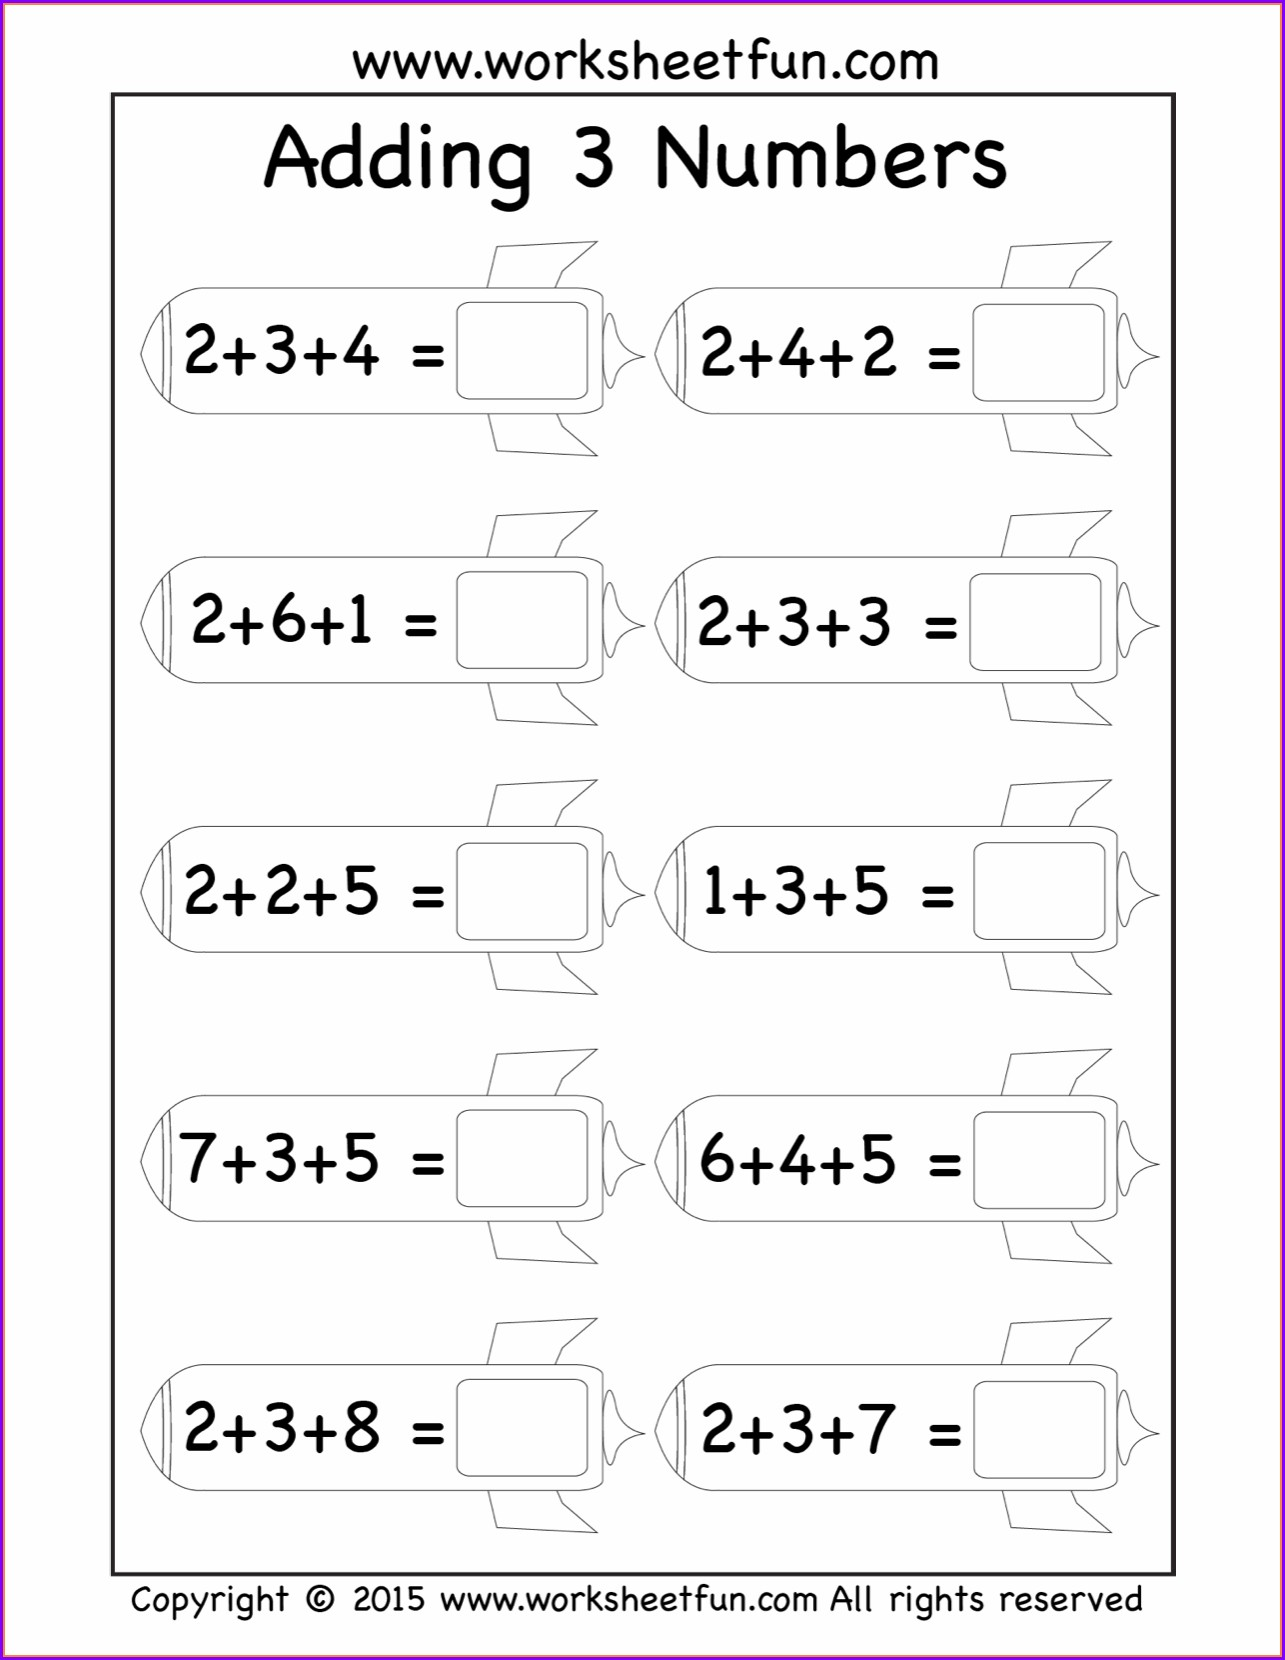 Adding 3 Numbers Worksheet For First Grade